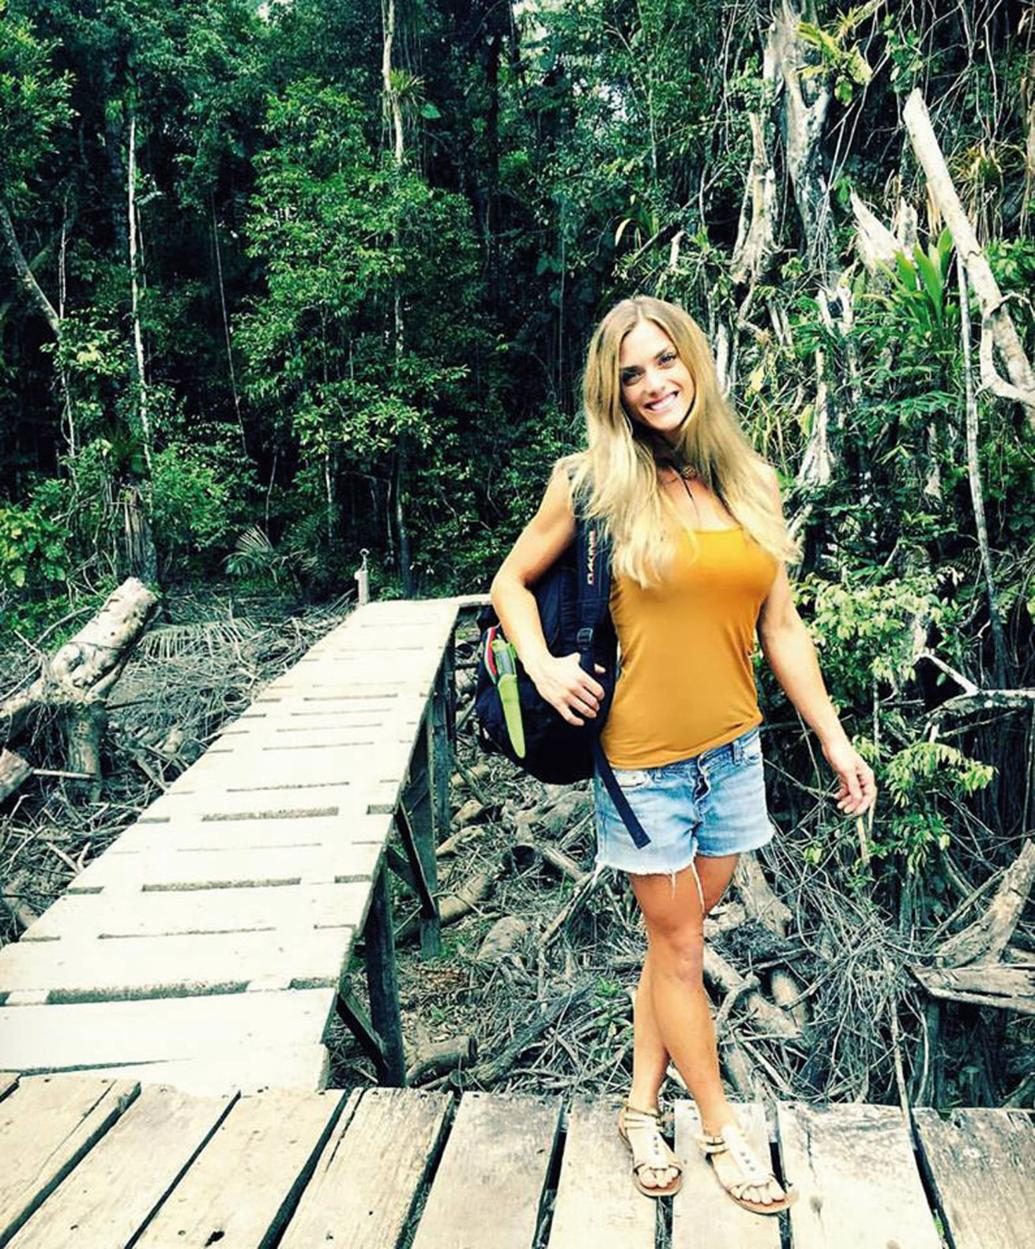 Naked and Afraid - Tri-County Times: Human Interests, Recipes